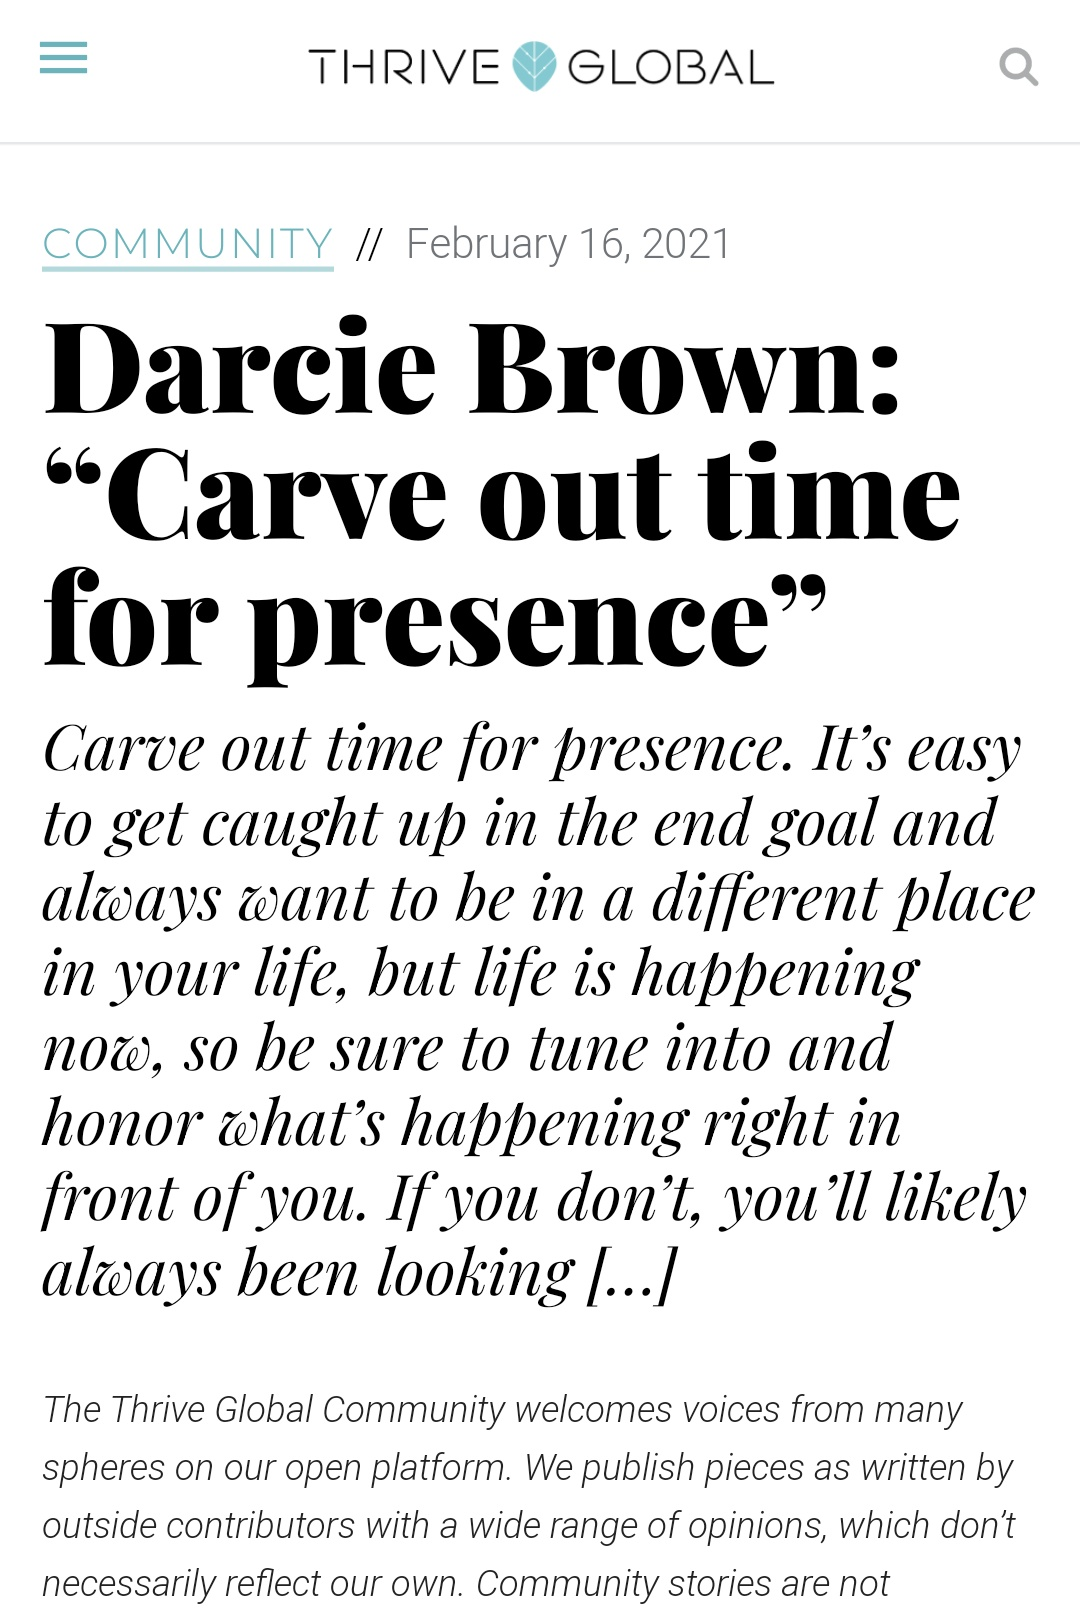 Carve out time for presence